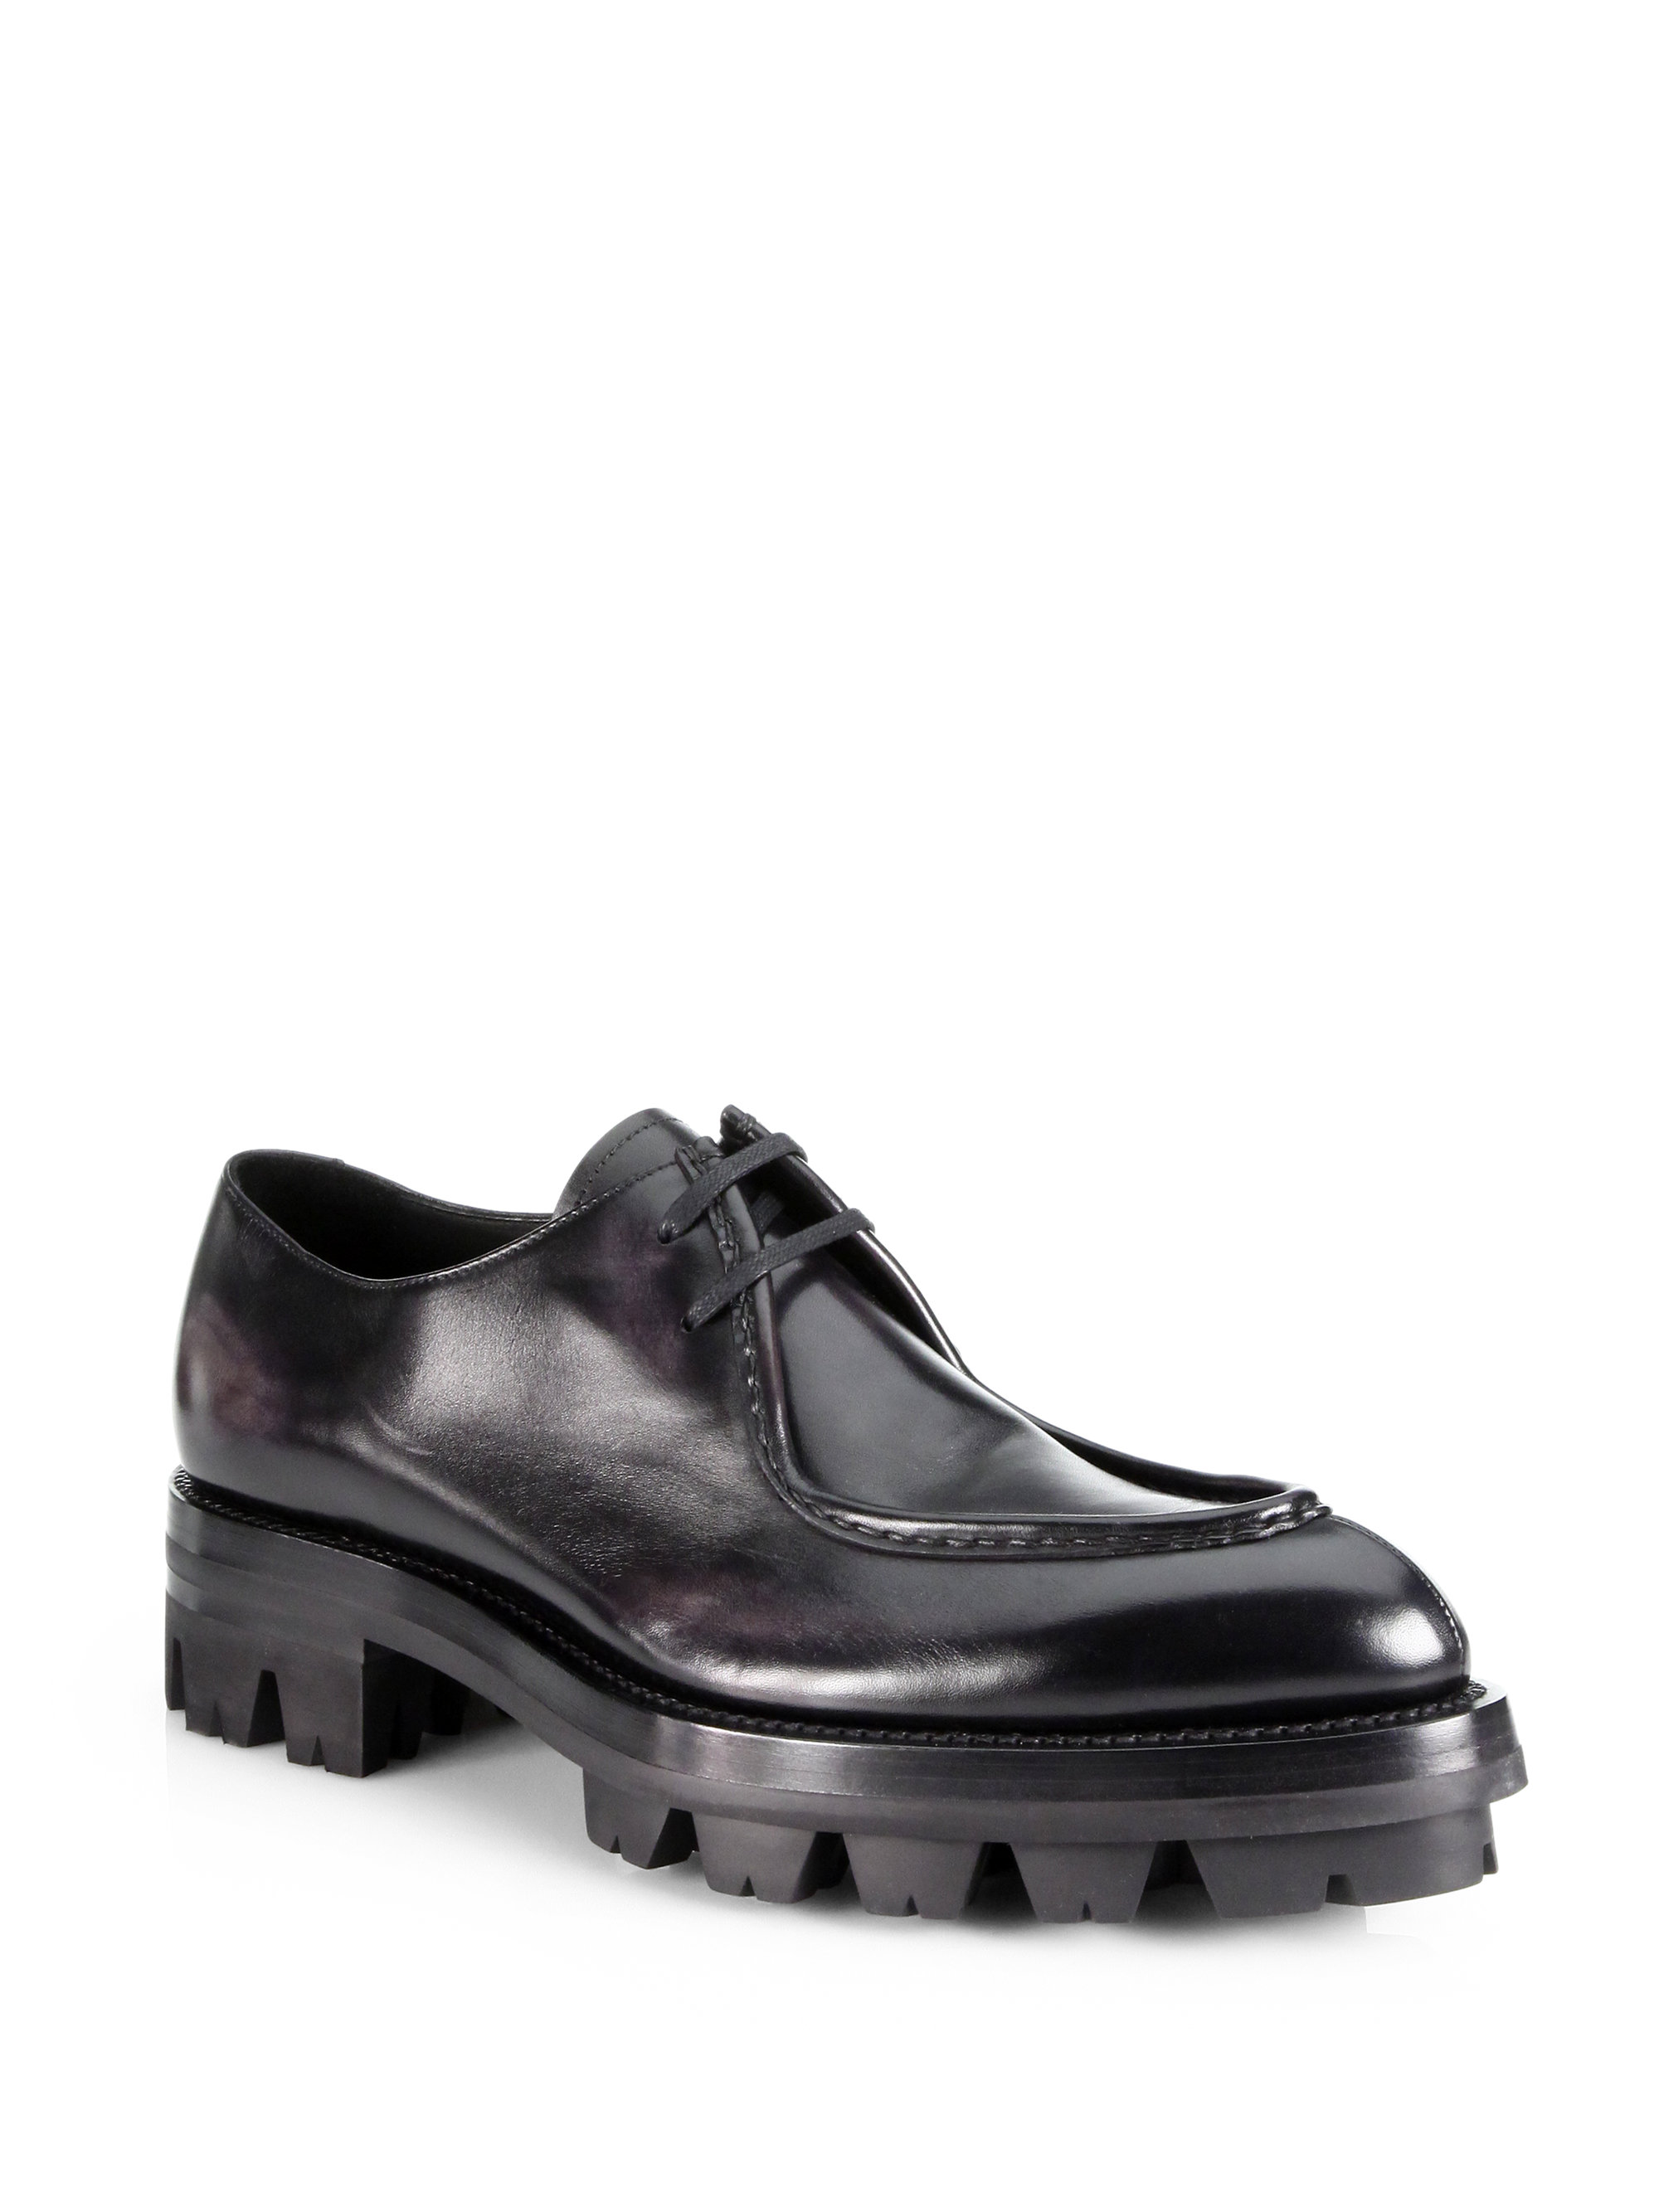 Rag And Bone Shoes Mens Rubber Sole